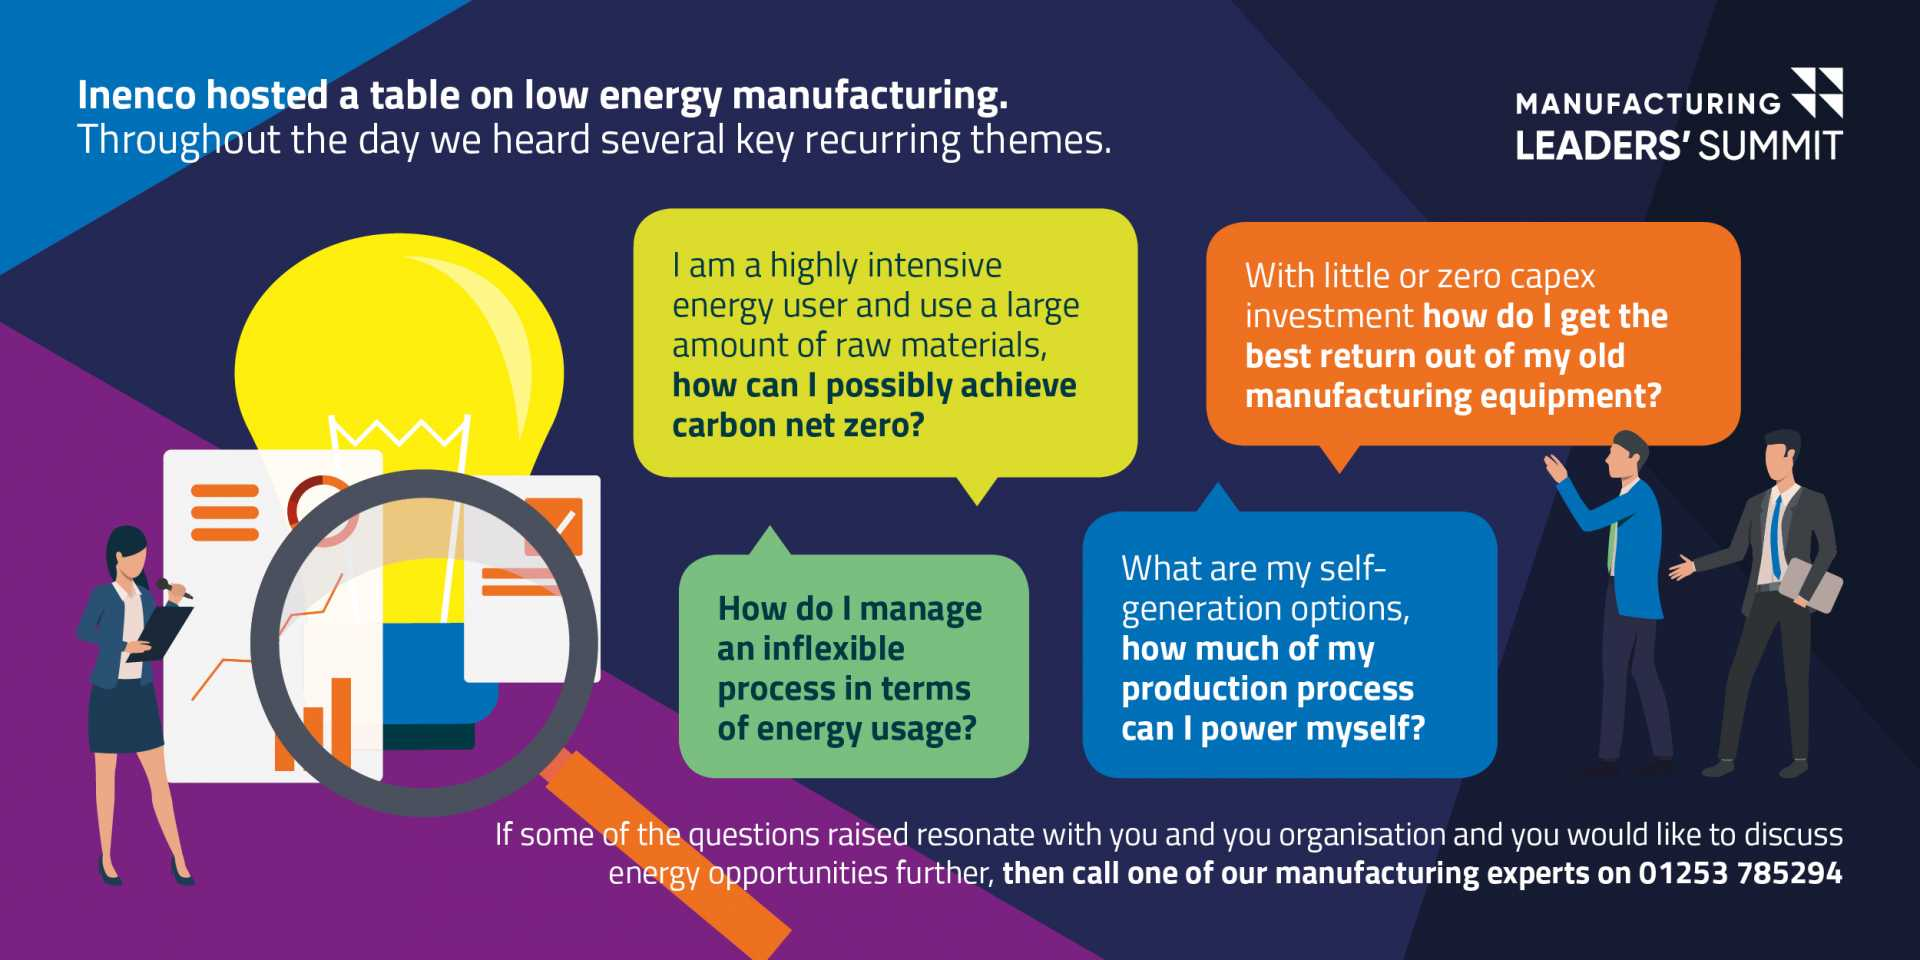 thumbnail Manufacturing Leaders' Summit Email Infographic v1.1 - Inenco Low Energy